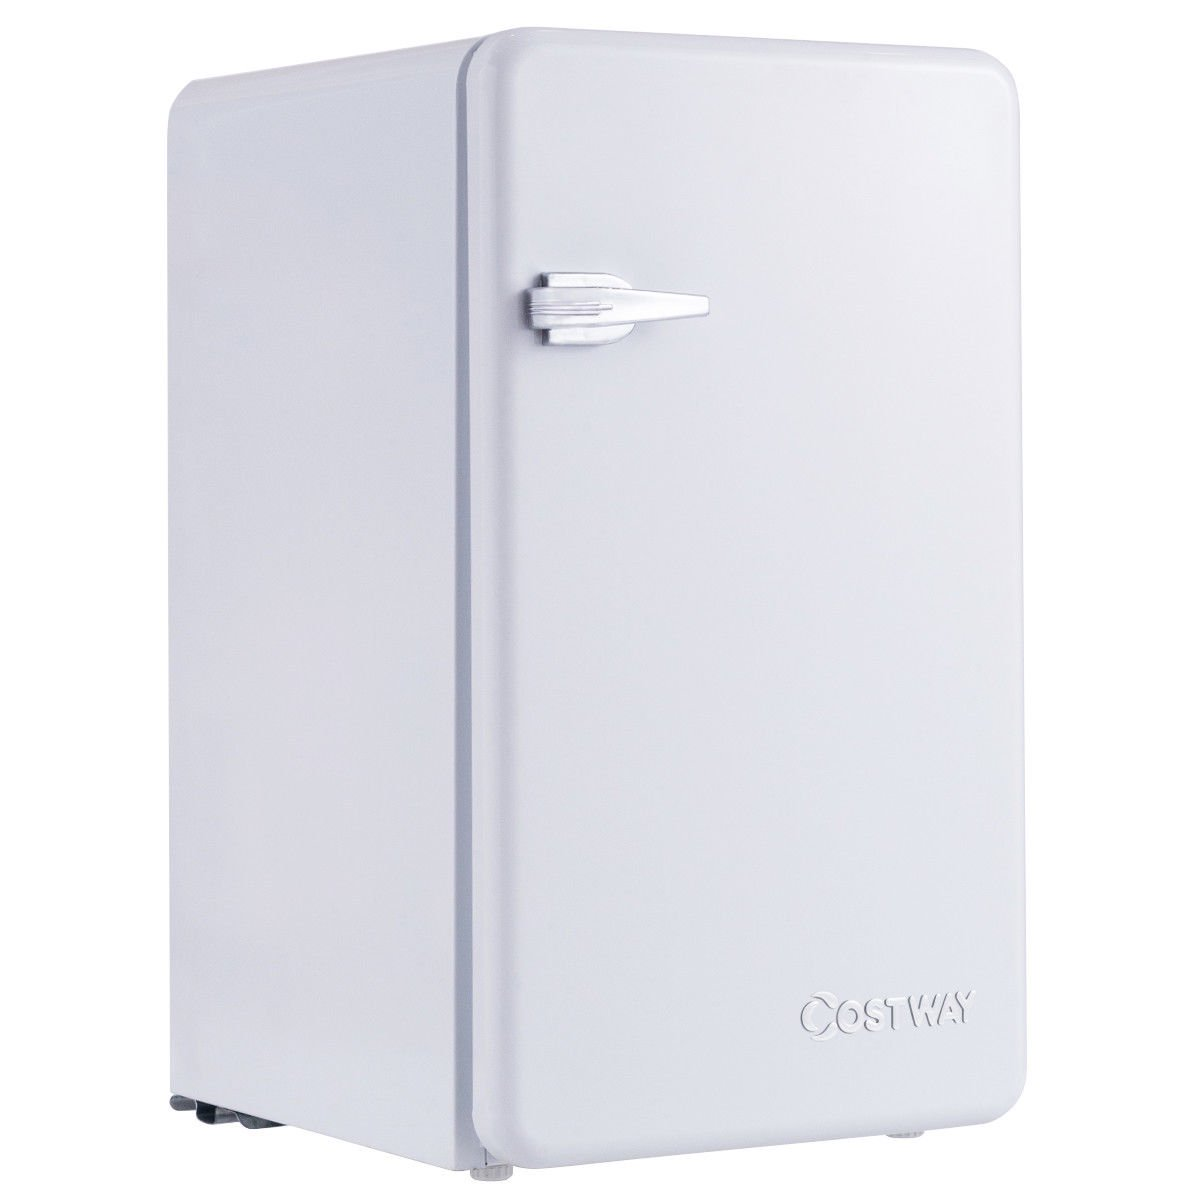 Costway 3 2 Cu Ft Retro Compact